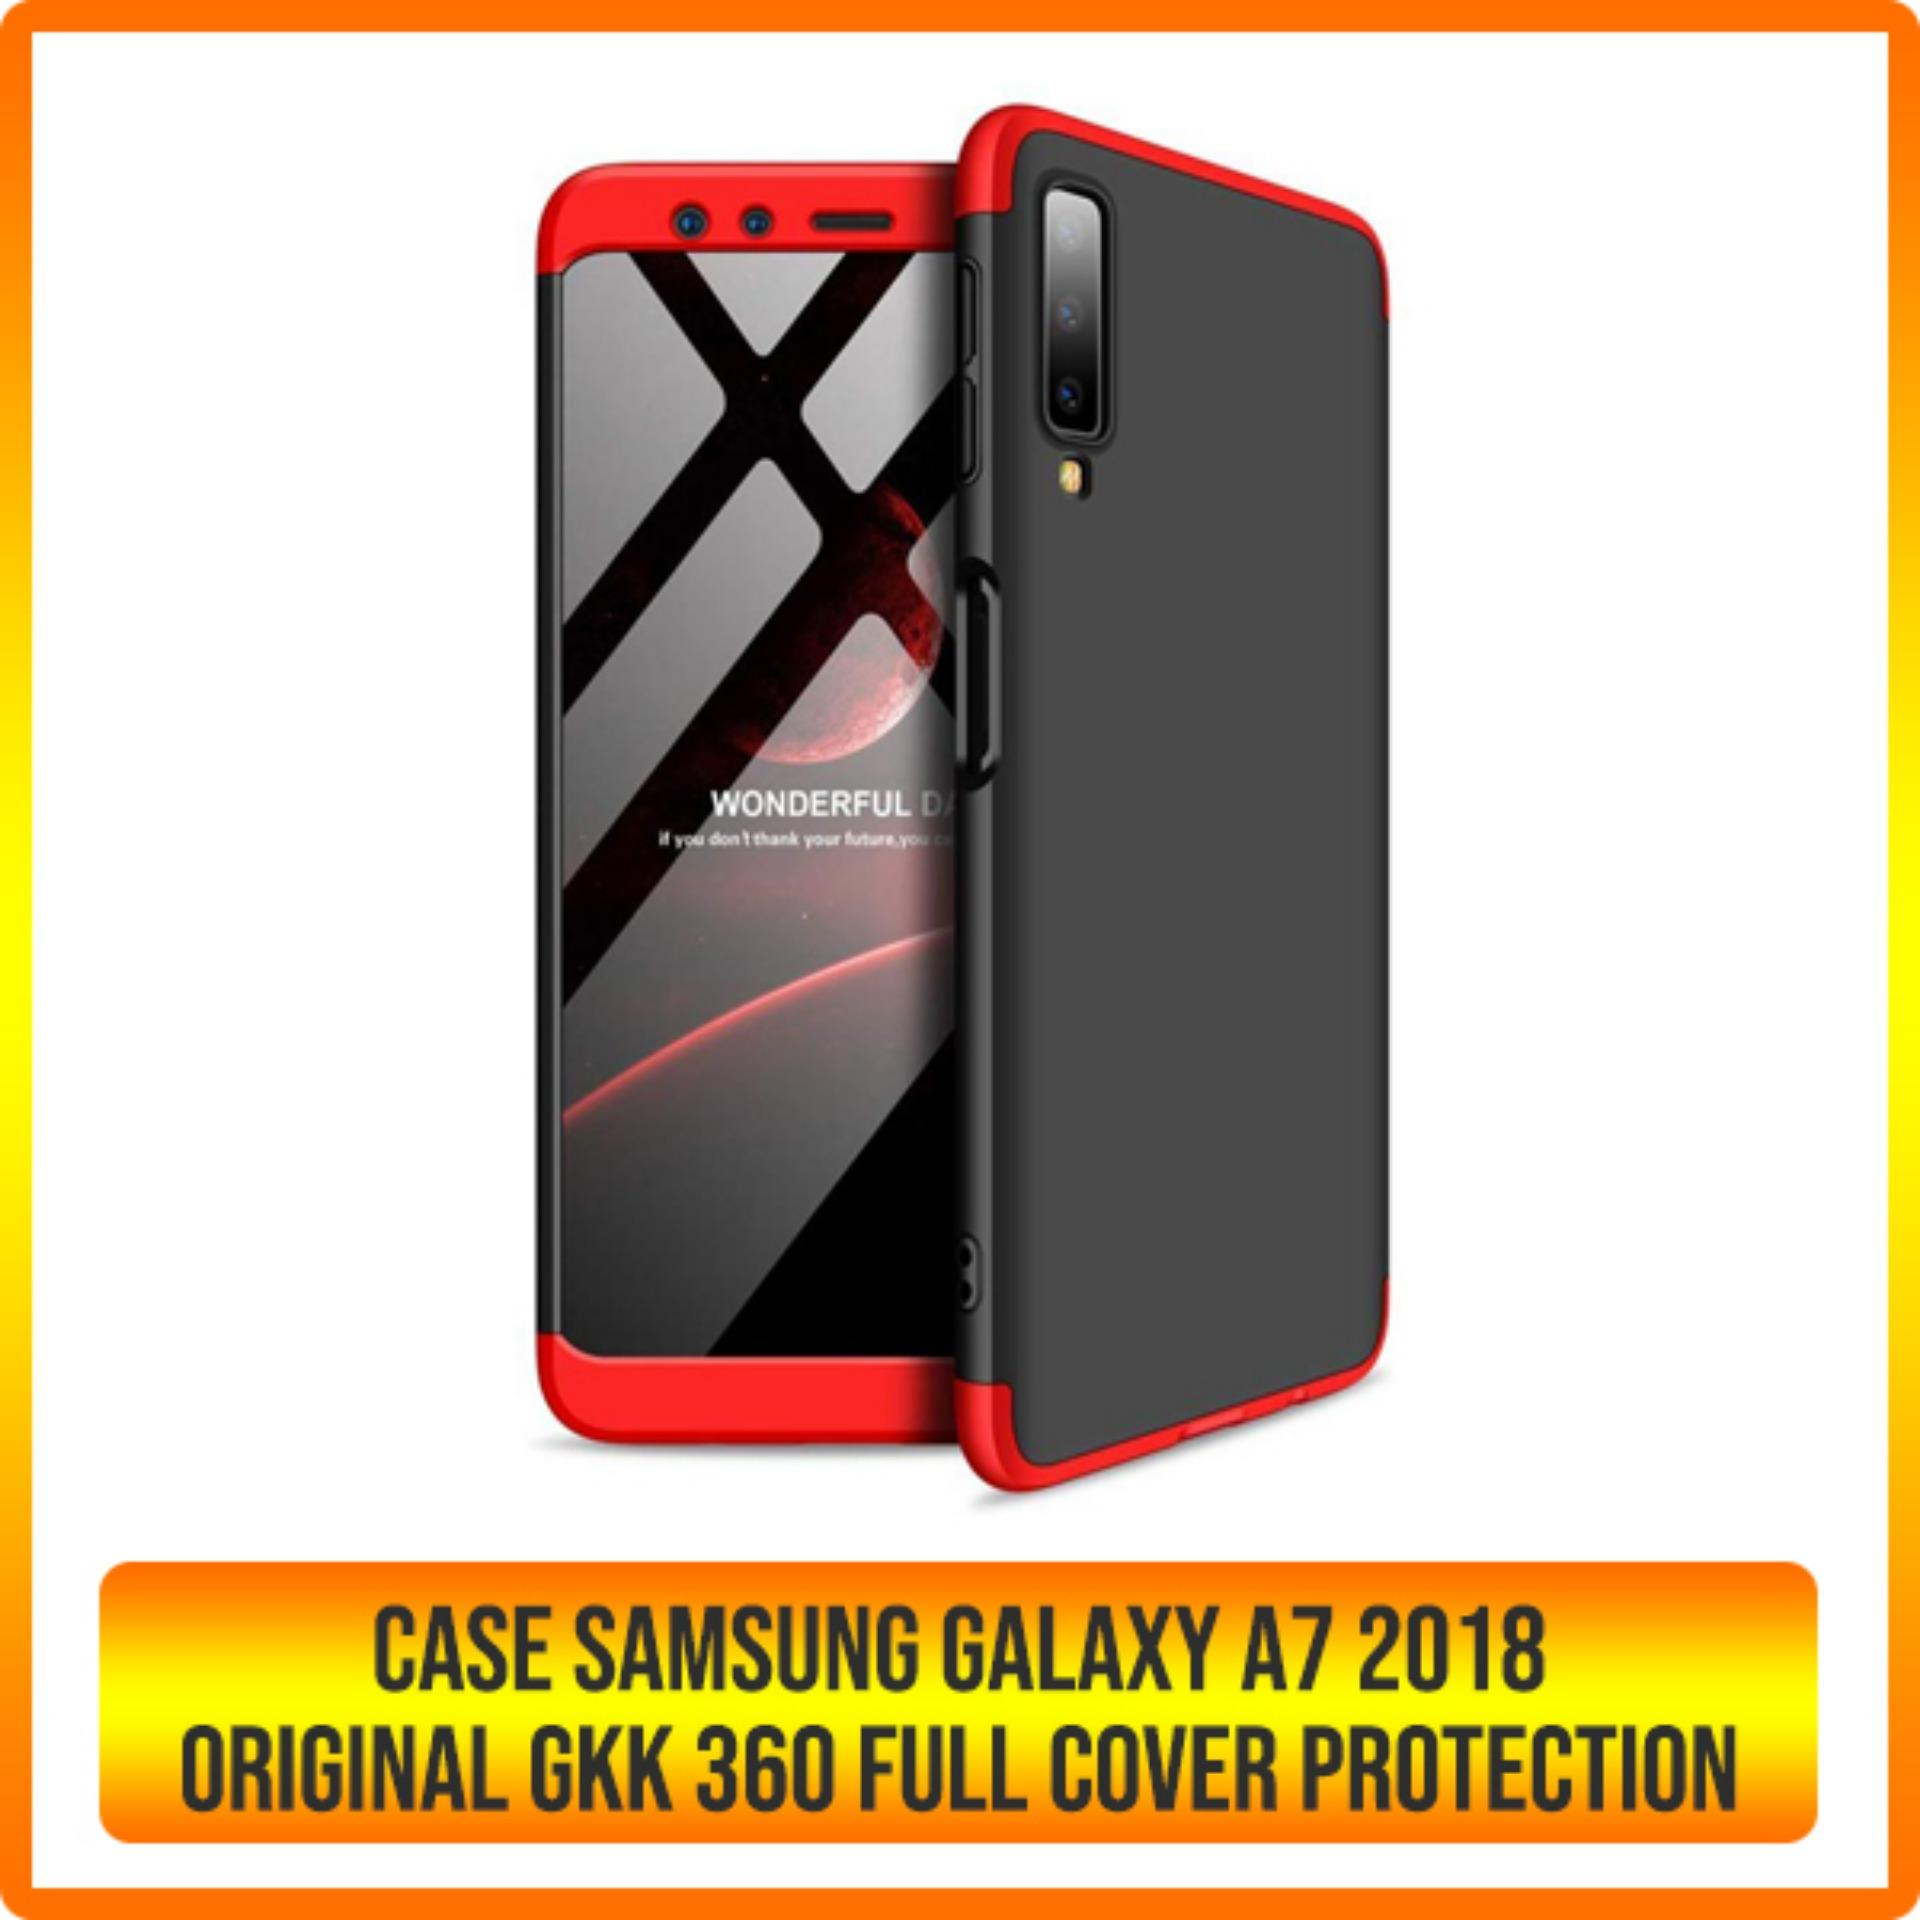 Features Case Samsung Galaxy A7 2018 Original Gkk 360 Full Cover